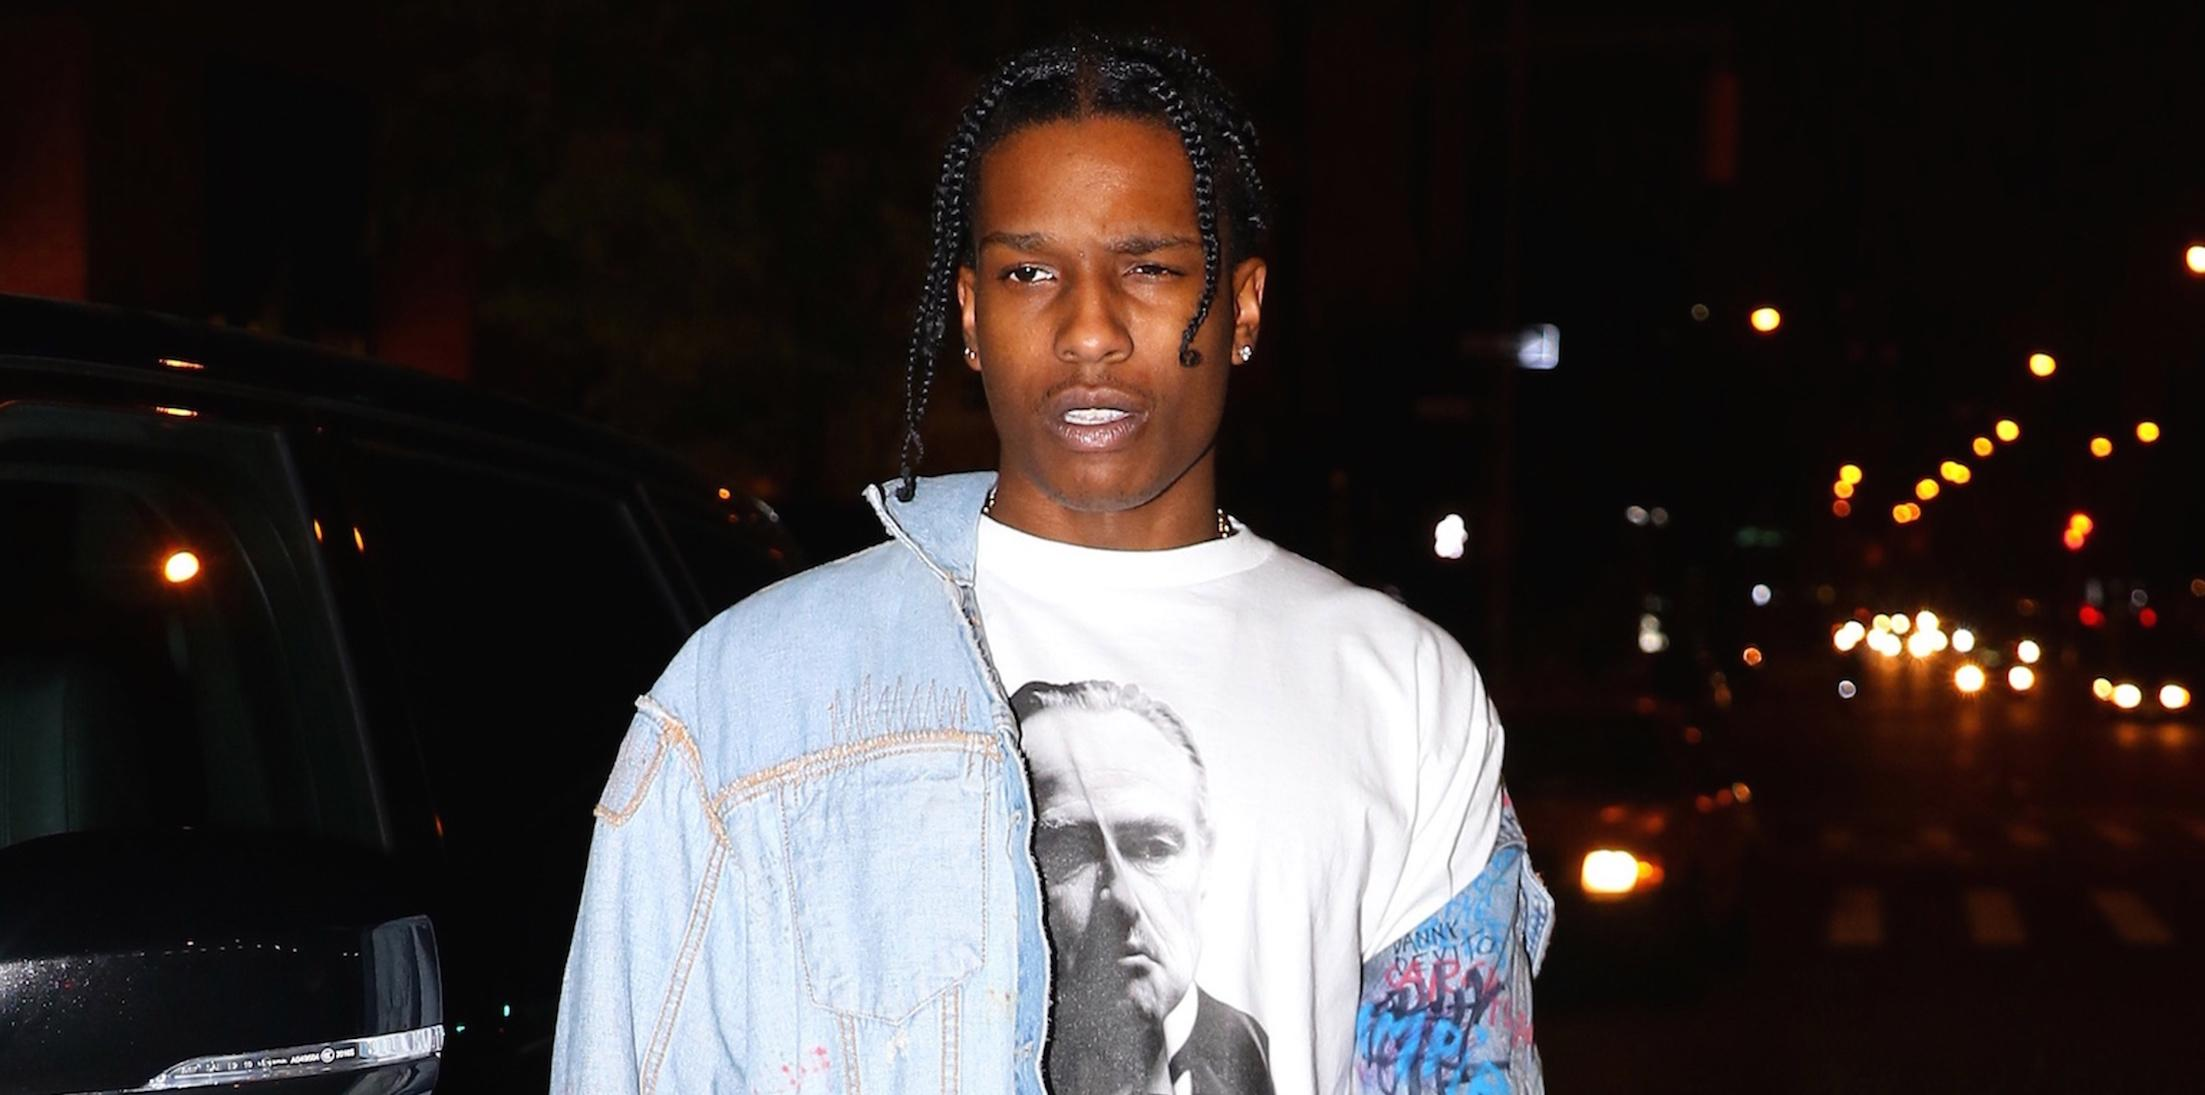 ASAP Rocky spotted Kendall Jenner's home with a ring on his finger